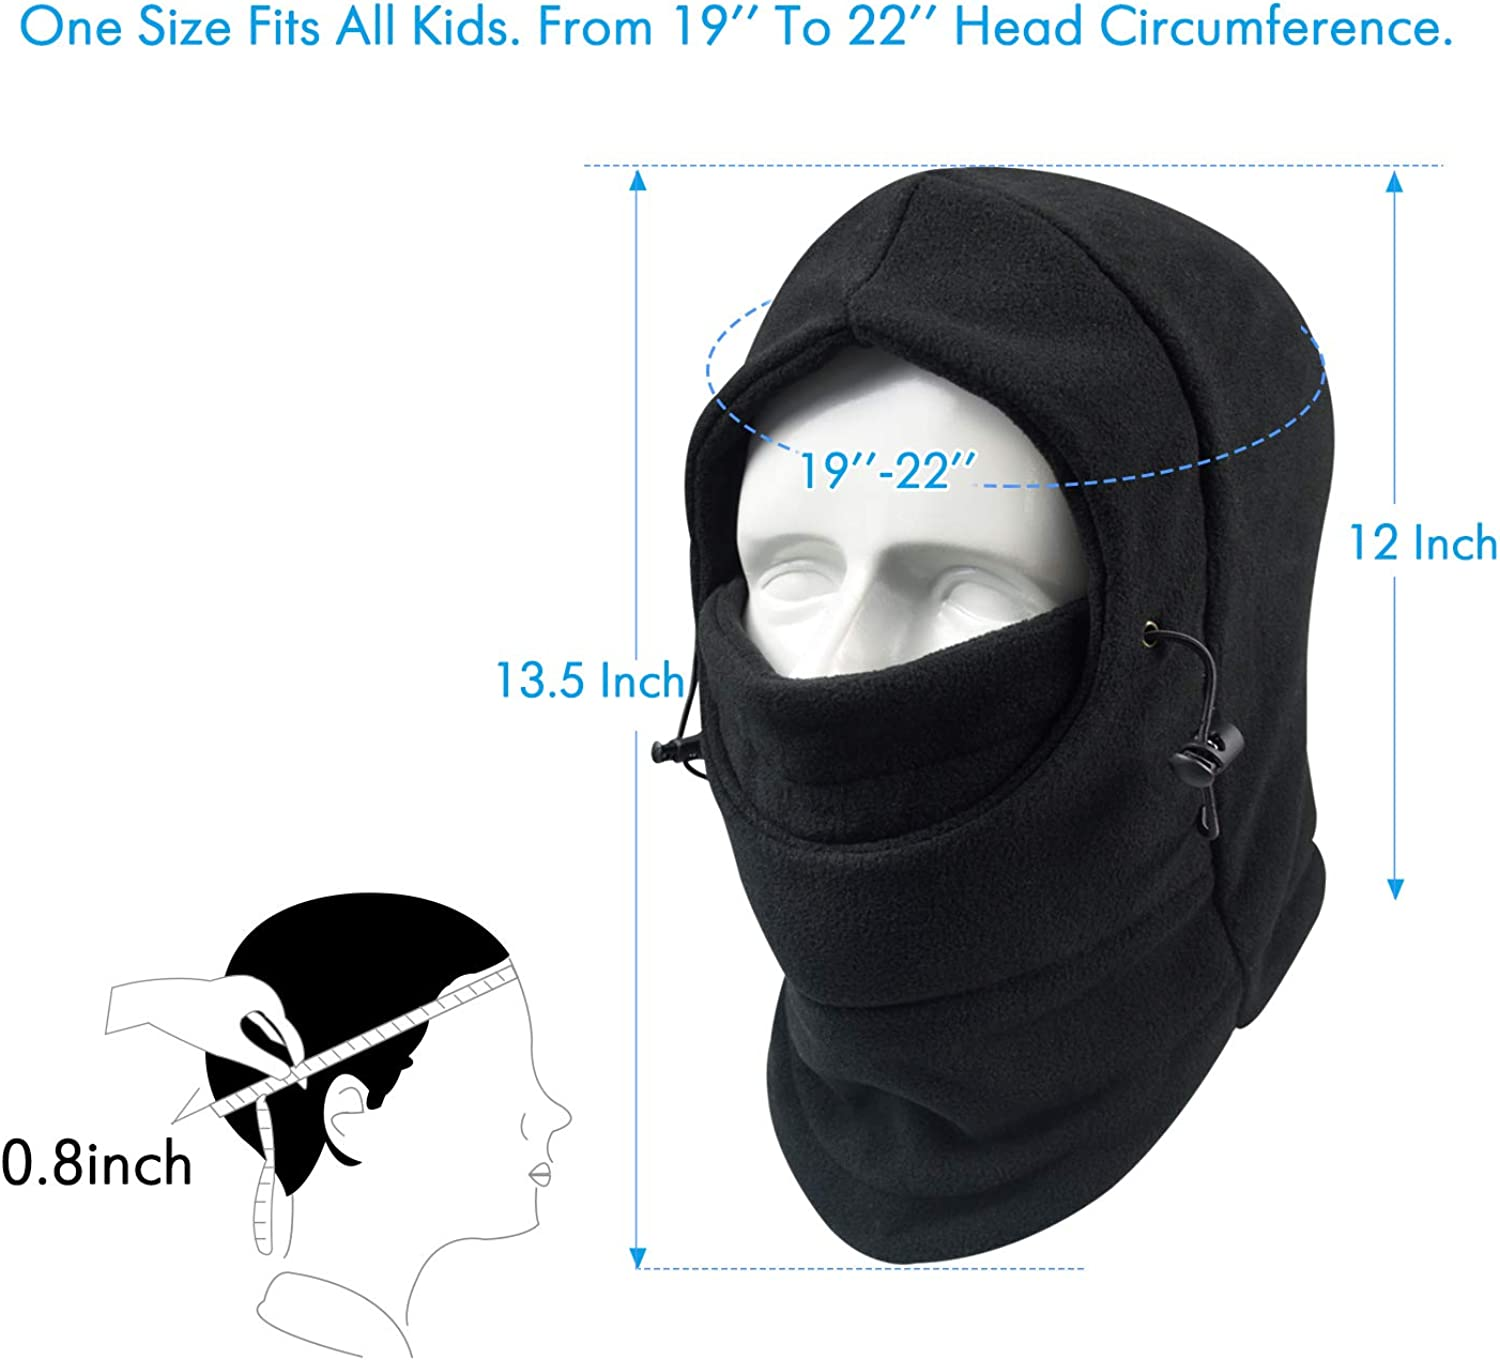 Your Choice Kids Balaclava Ski Cycling Face Mask for Cold Weather Girl Boy Childrens Winter Outdoor Fleece